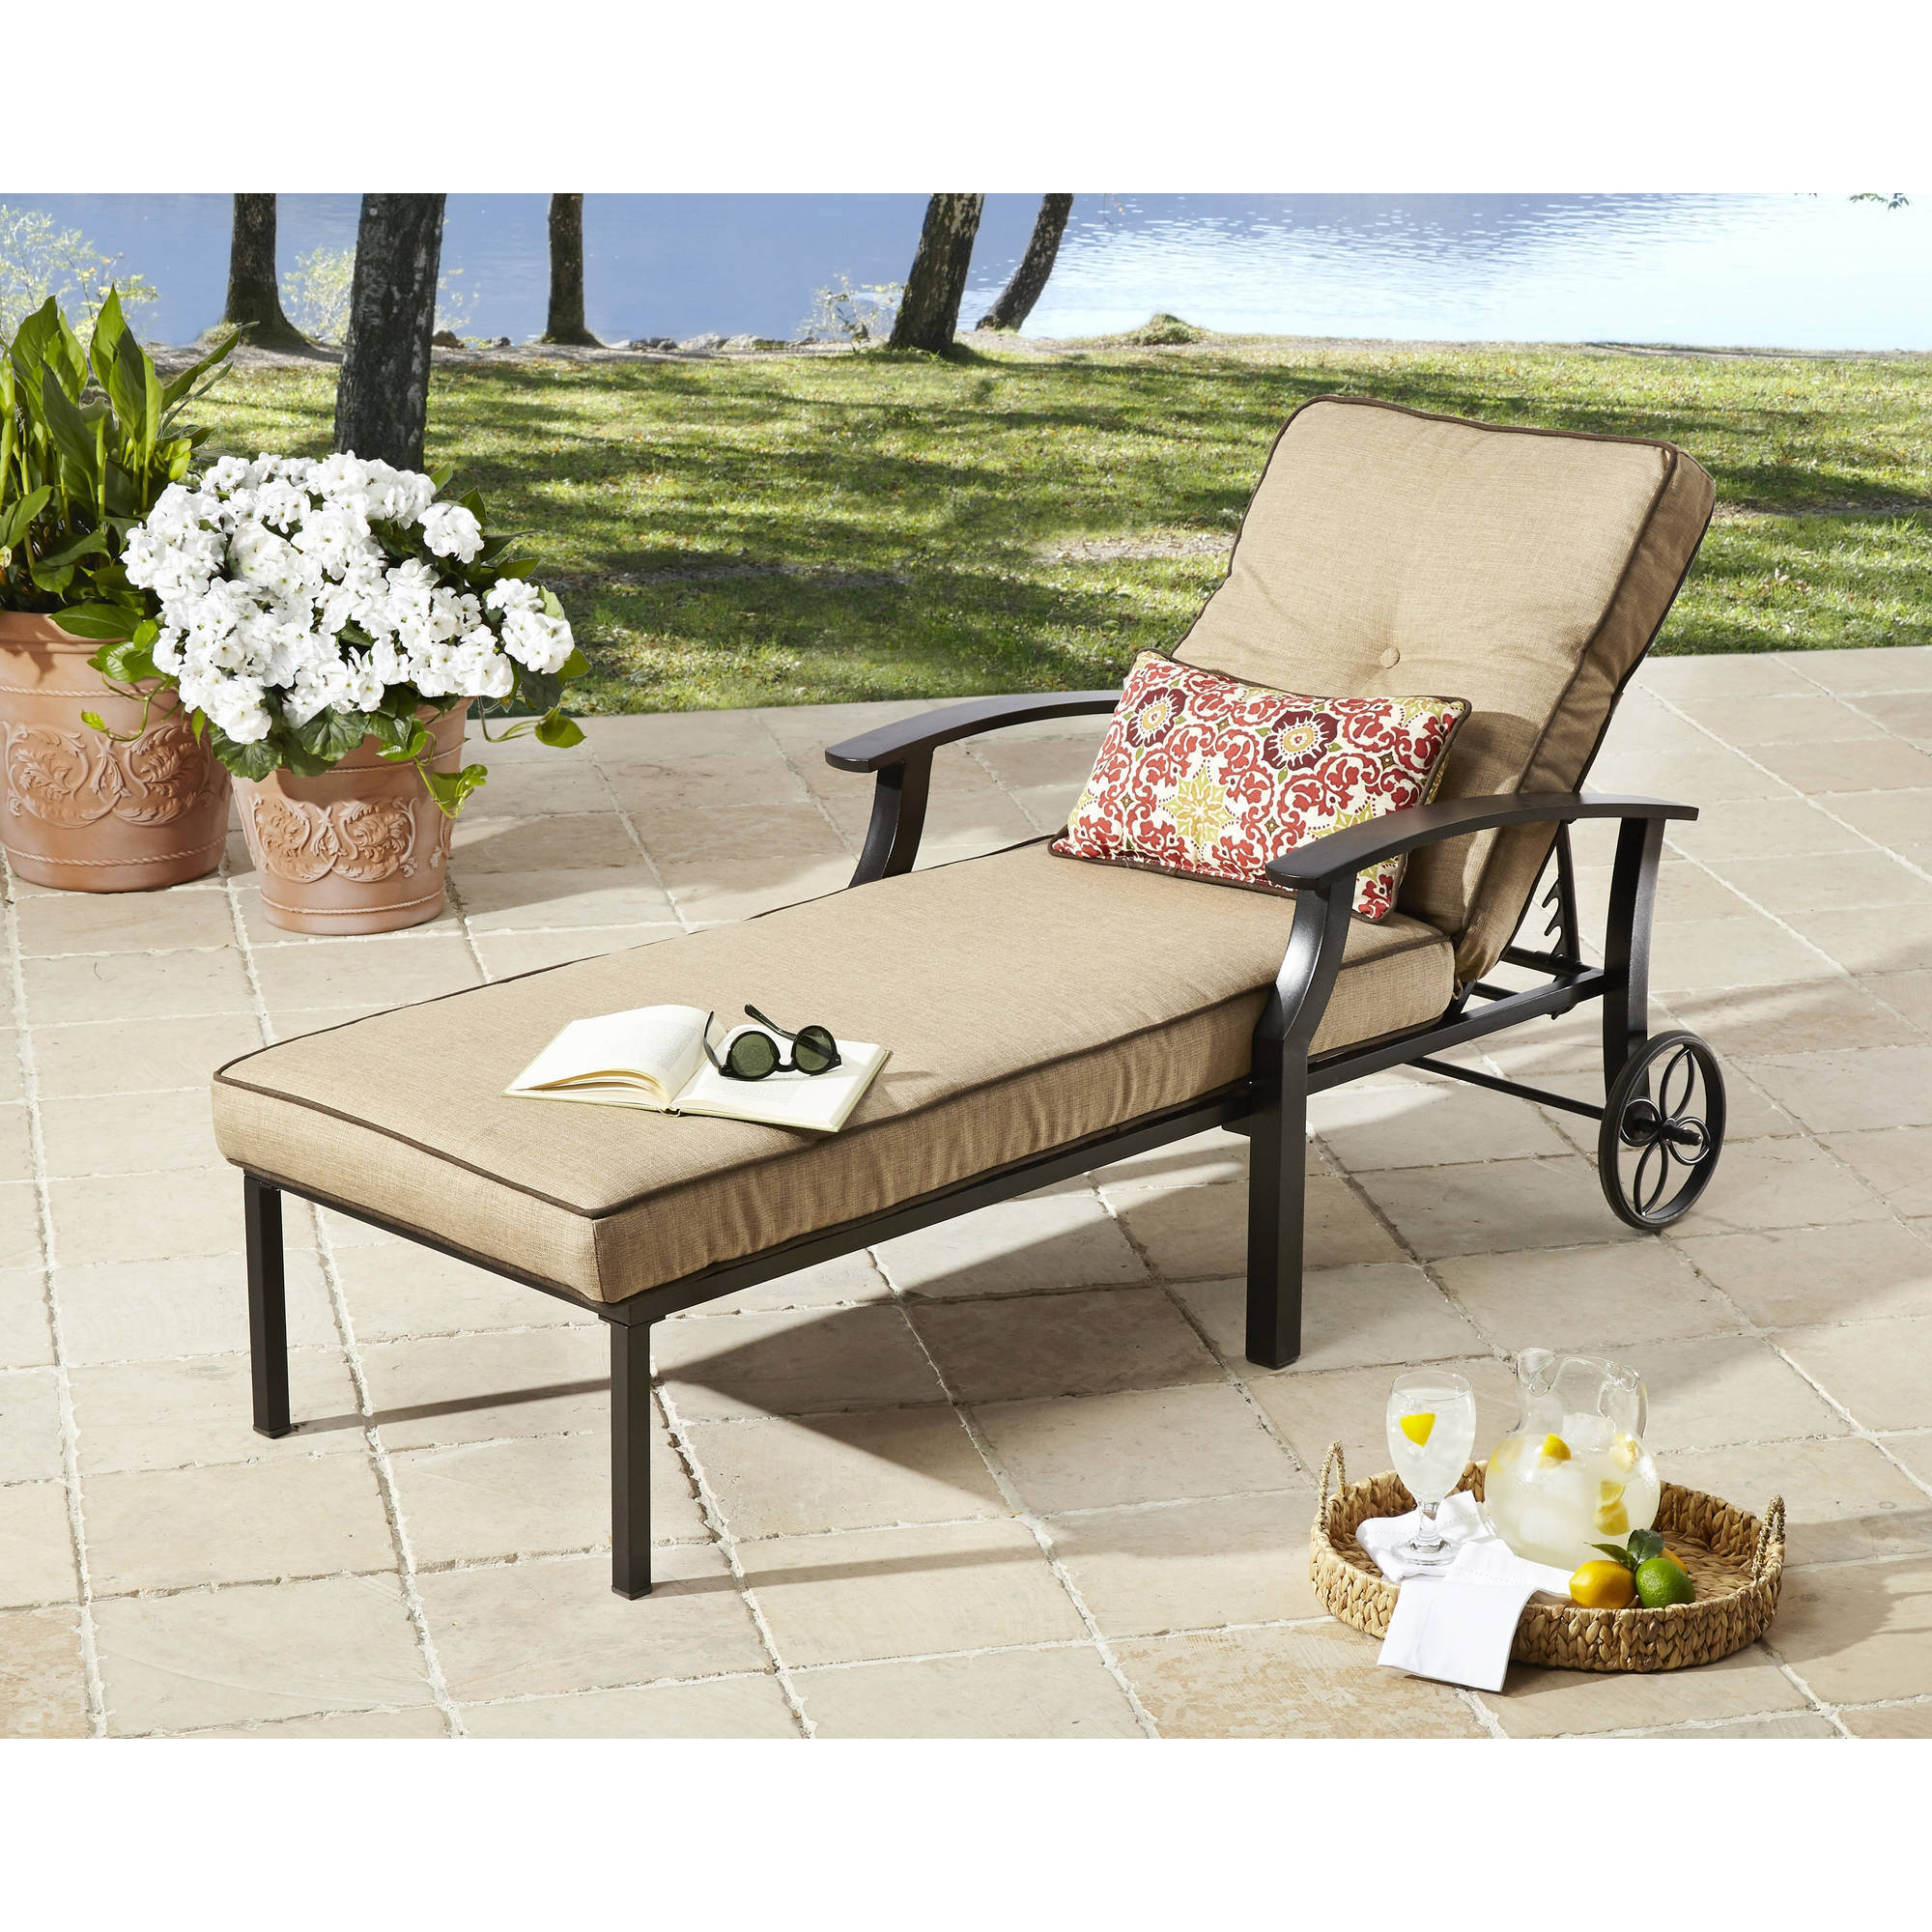 cp aace com chairs walmart outdoor patio furniture